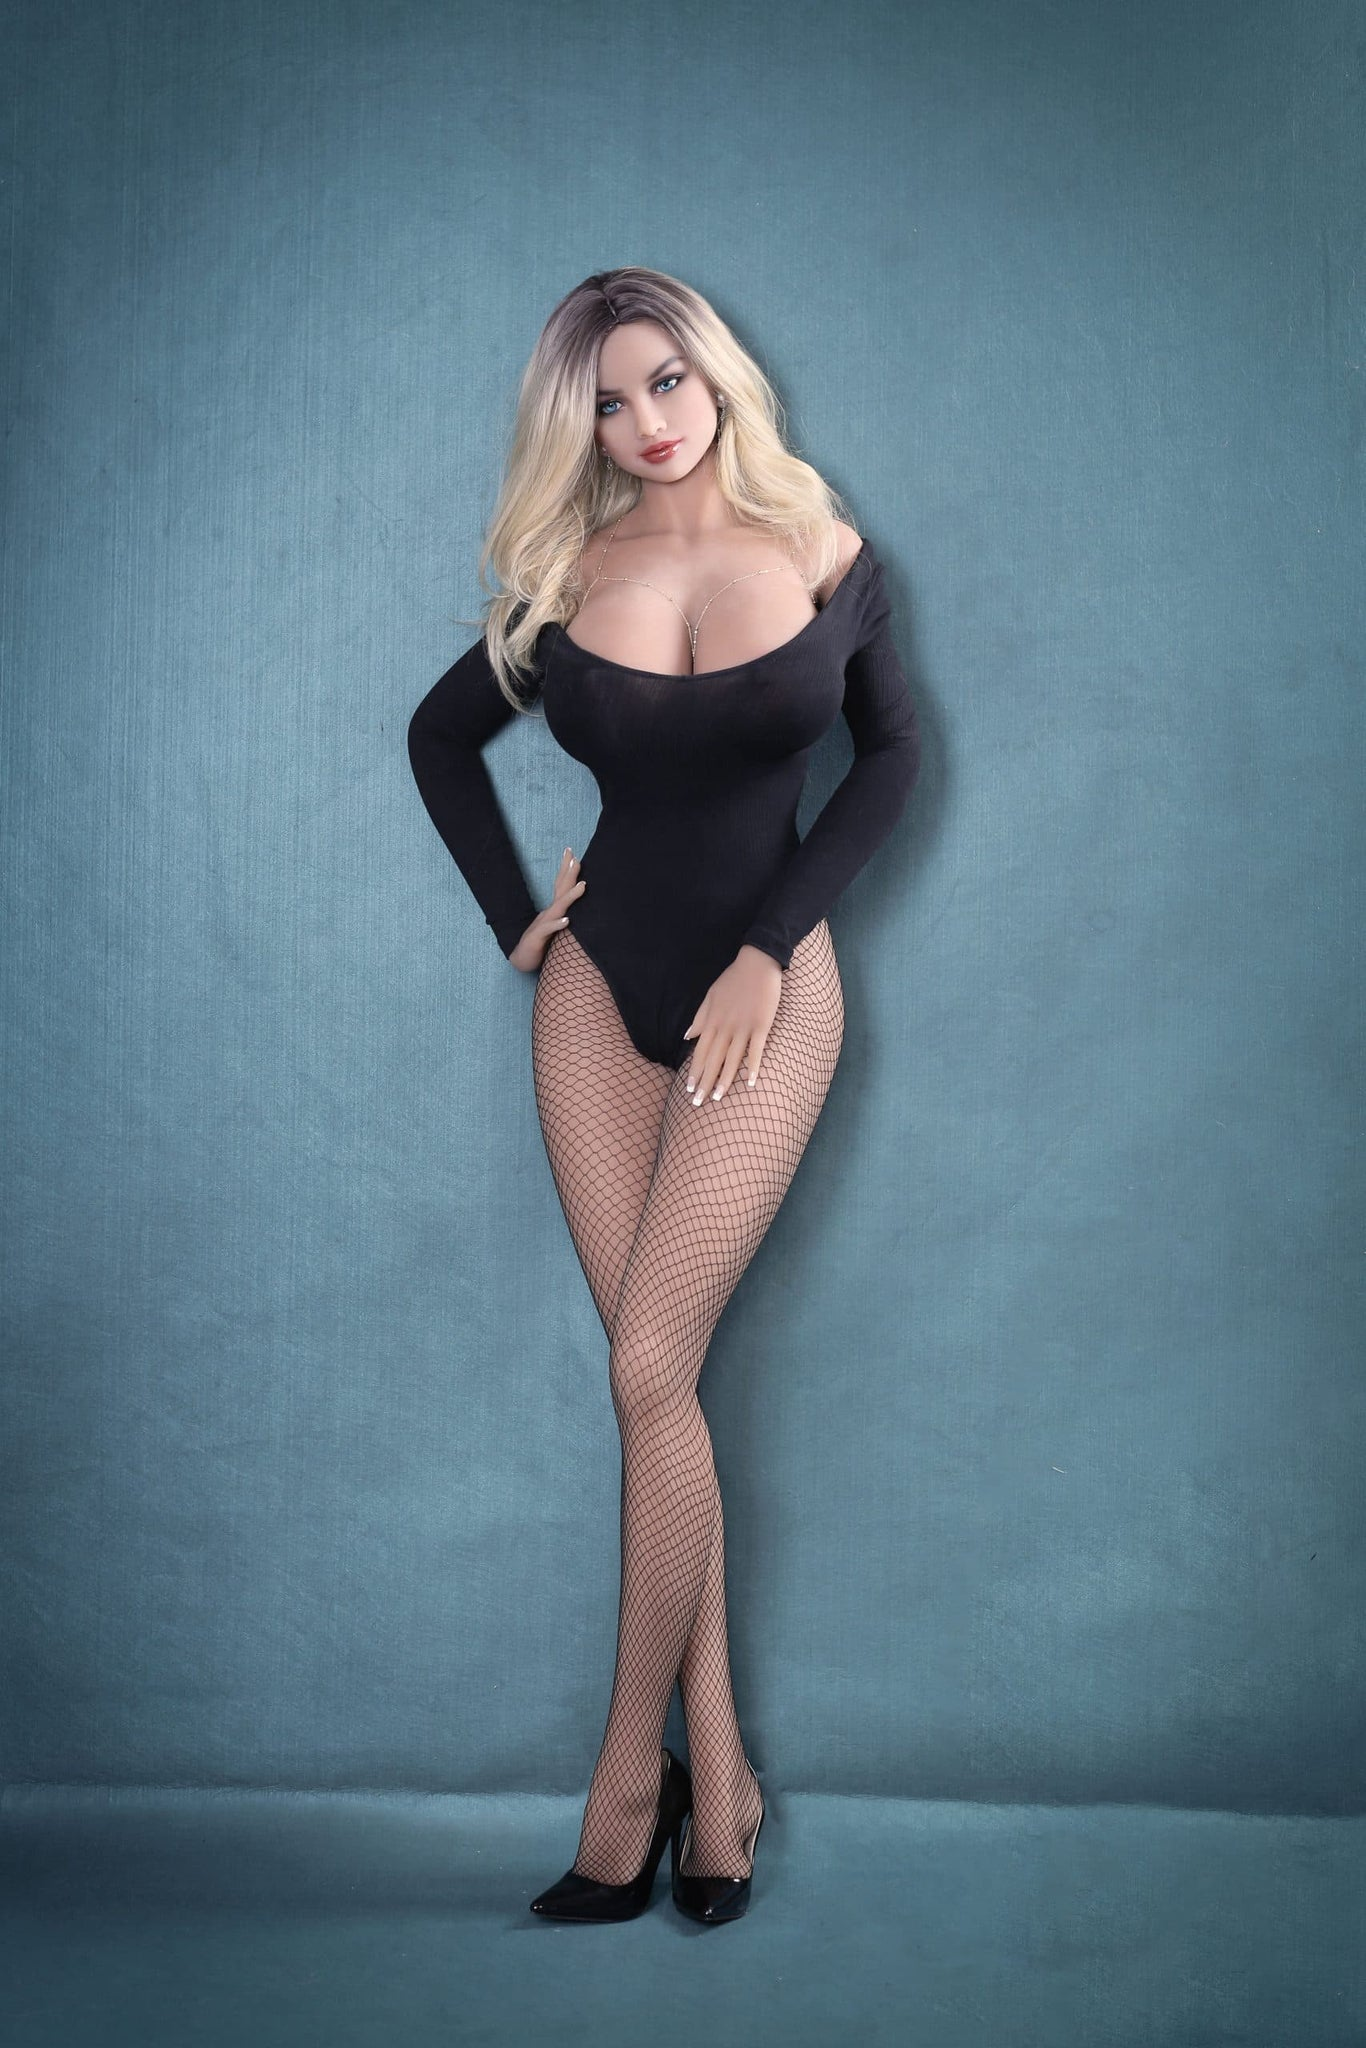 brit 170cm af blonde giant massive tits athletic tpe sex doll(4)